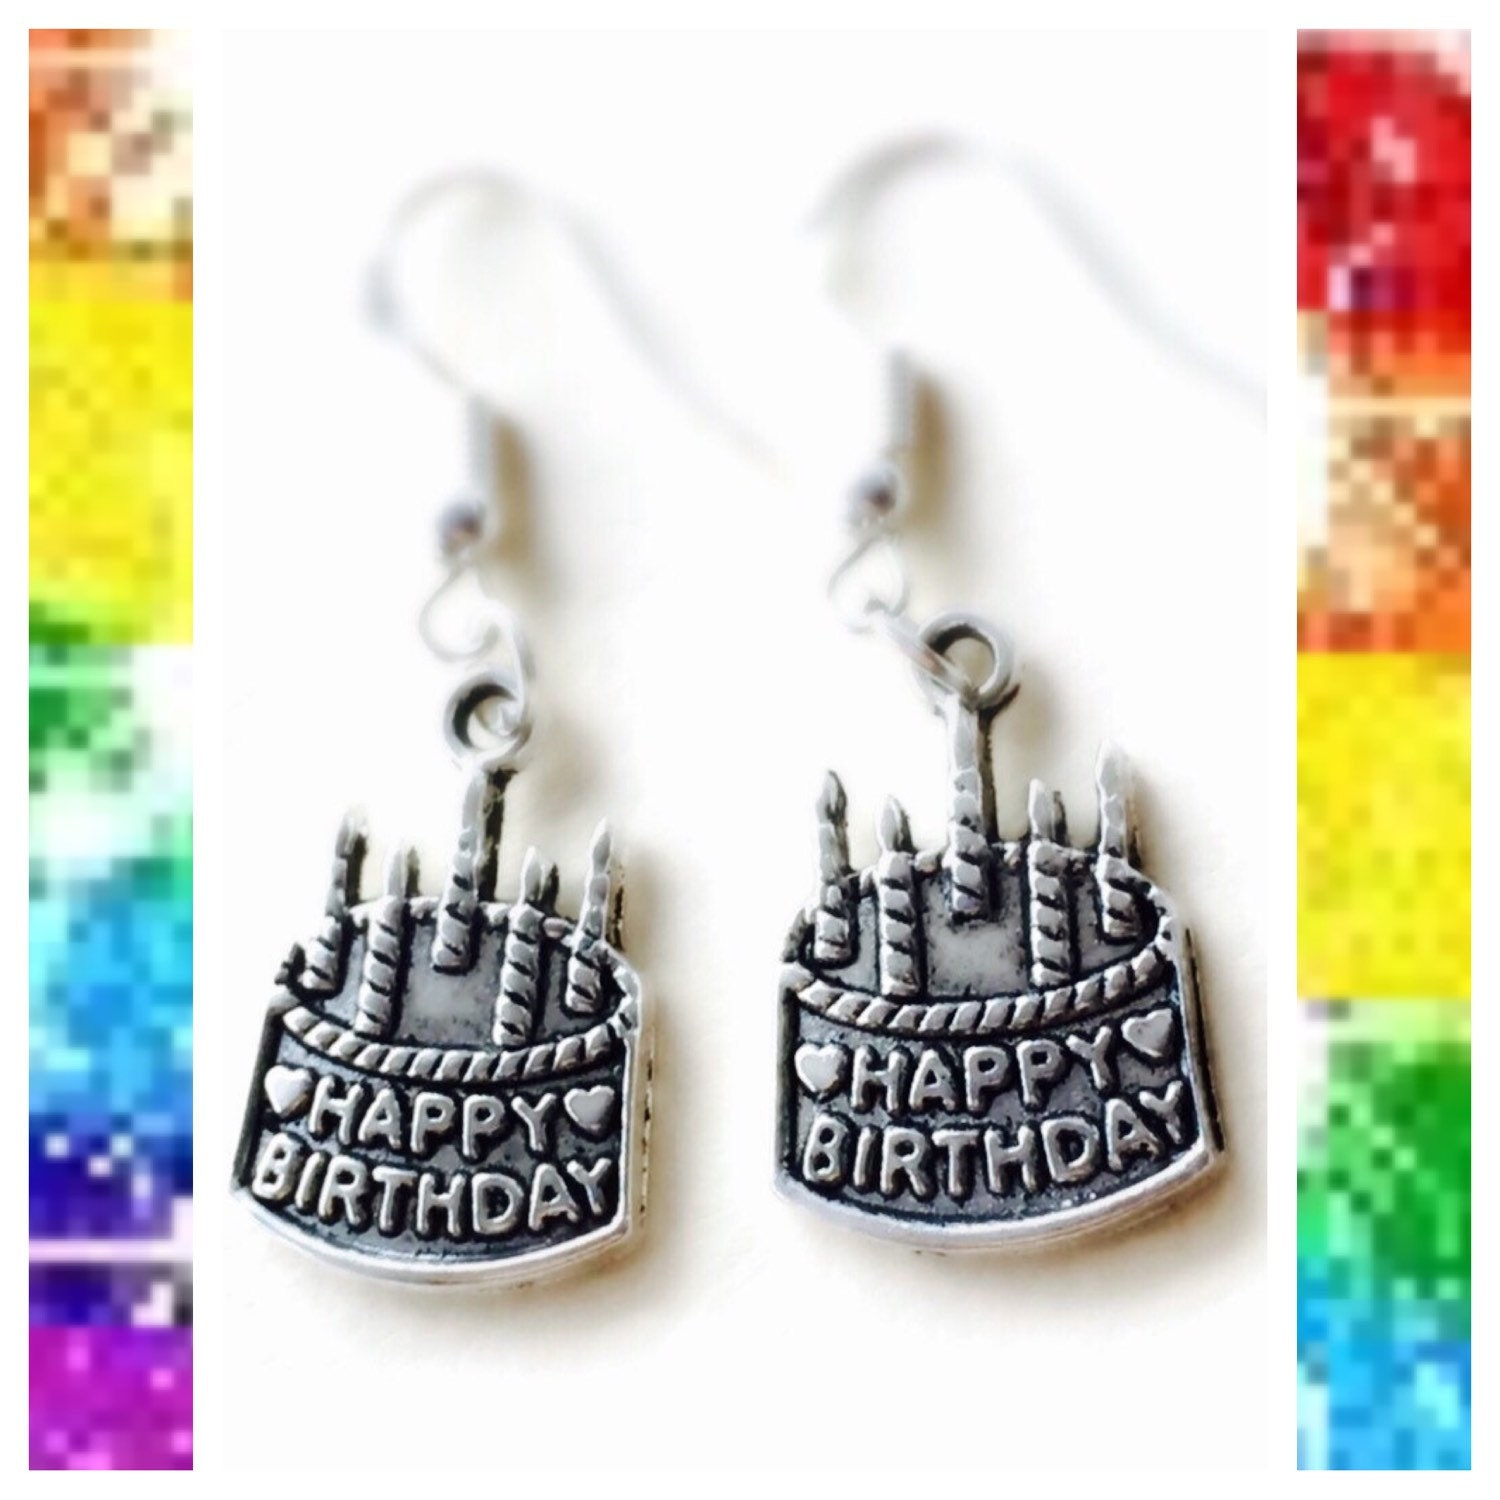 Happy Birthday Cake Earrings 925 Sterling Silver Wires